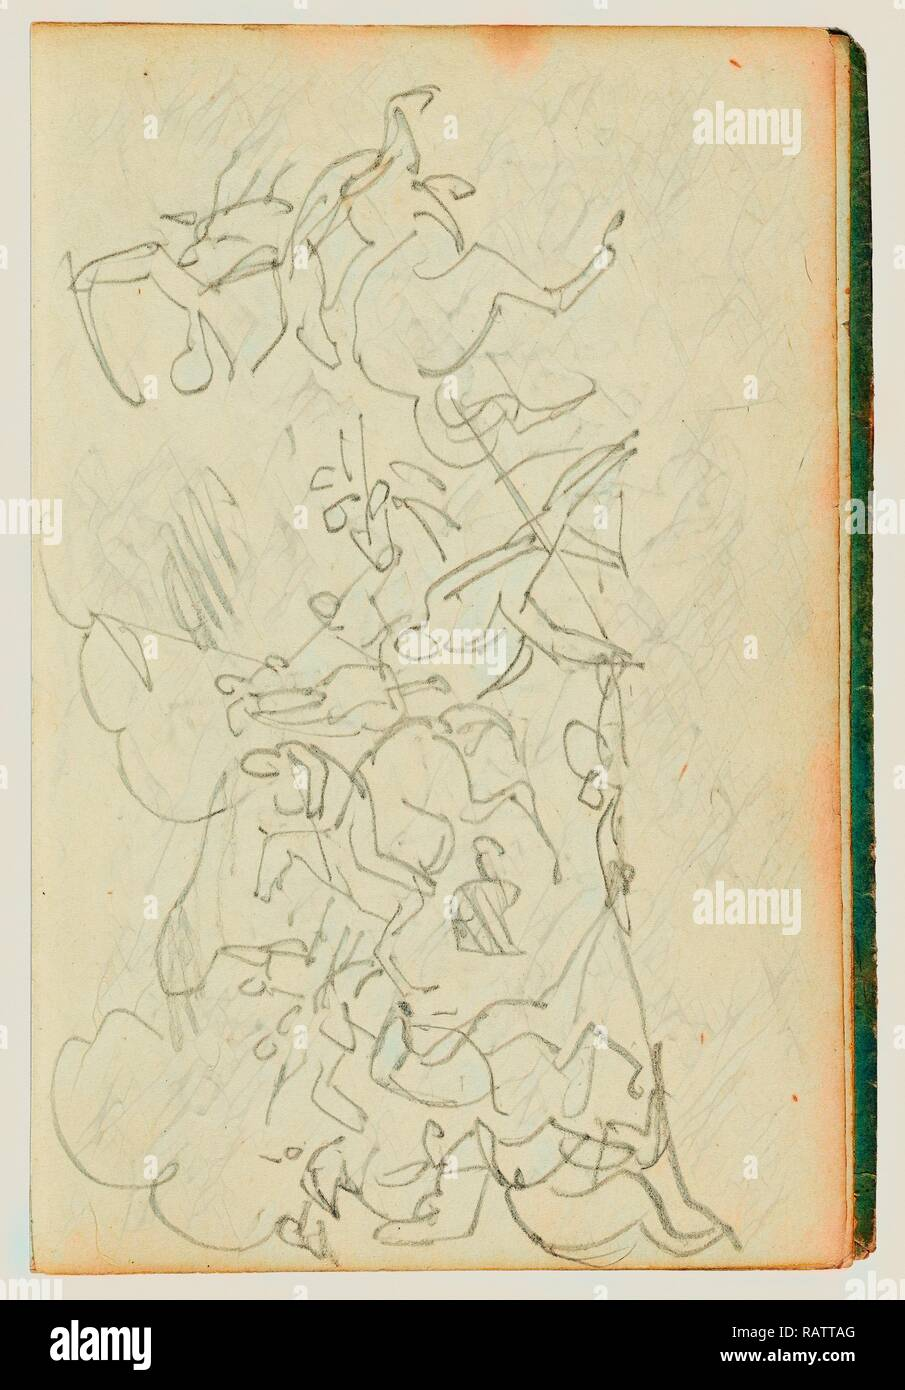 Cavalry battle, Théodore Géricault, French, 1791 - 1824, 1812 - 1814, Graphite, 15.2 x 10.6 cm (6 x 4 3/16 in reimagined - Stock Image